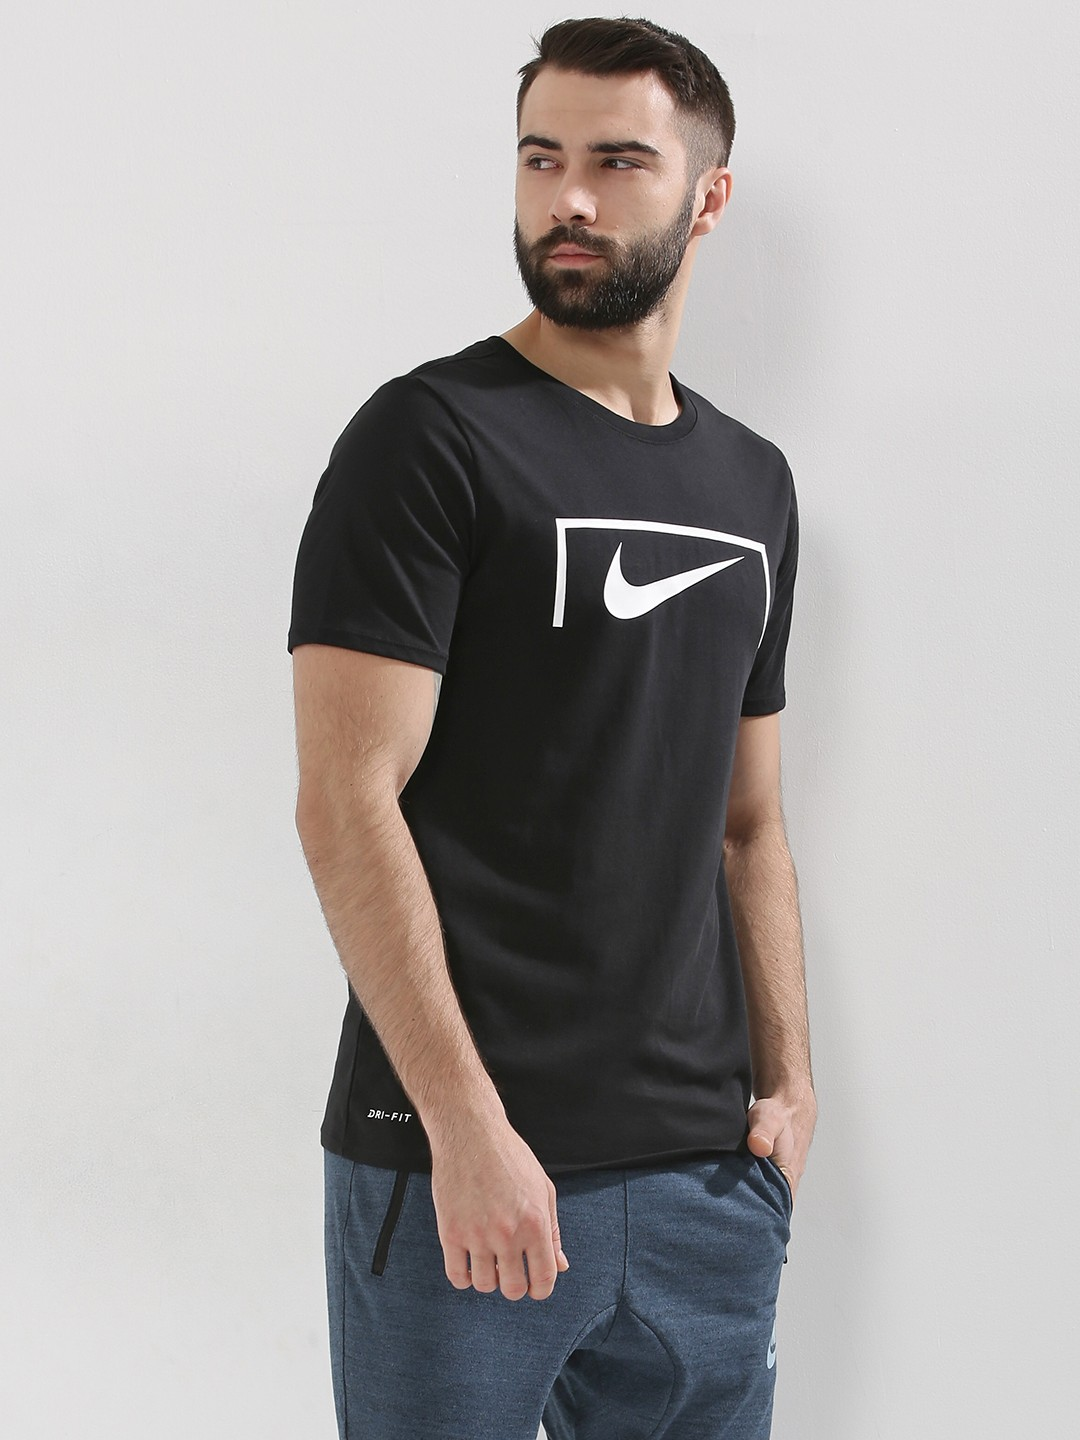 Buy nike swoosh logo t shirt for men men 39 s black t for Nike swoosh logo t shirt